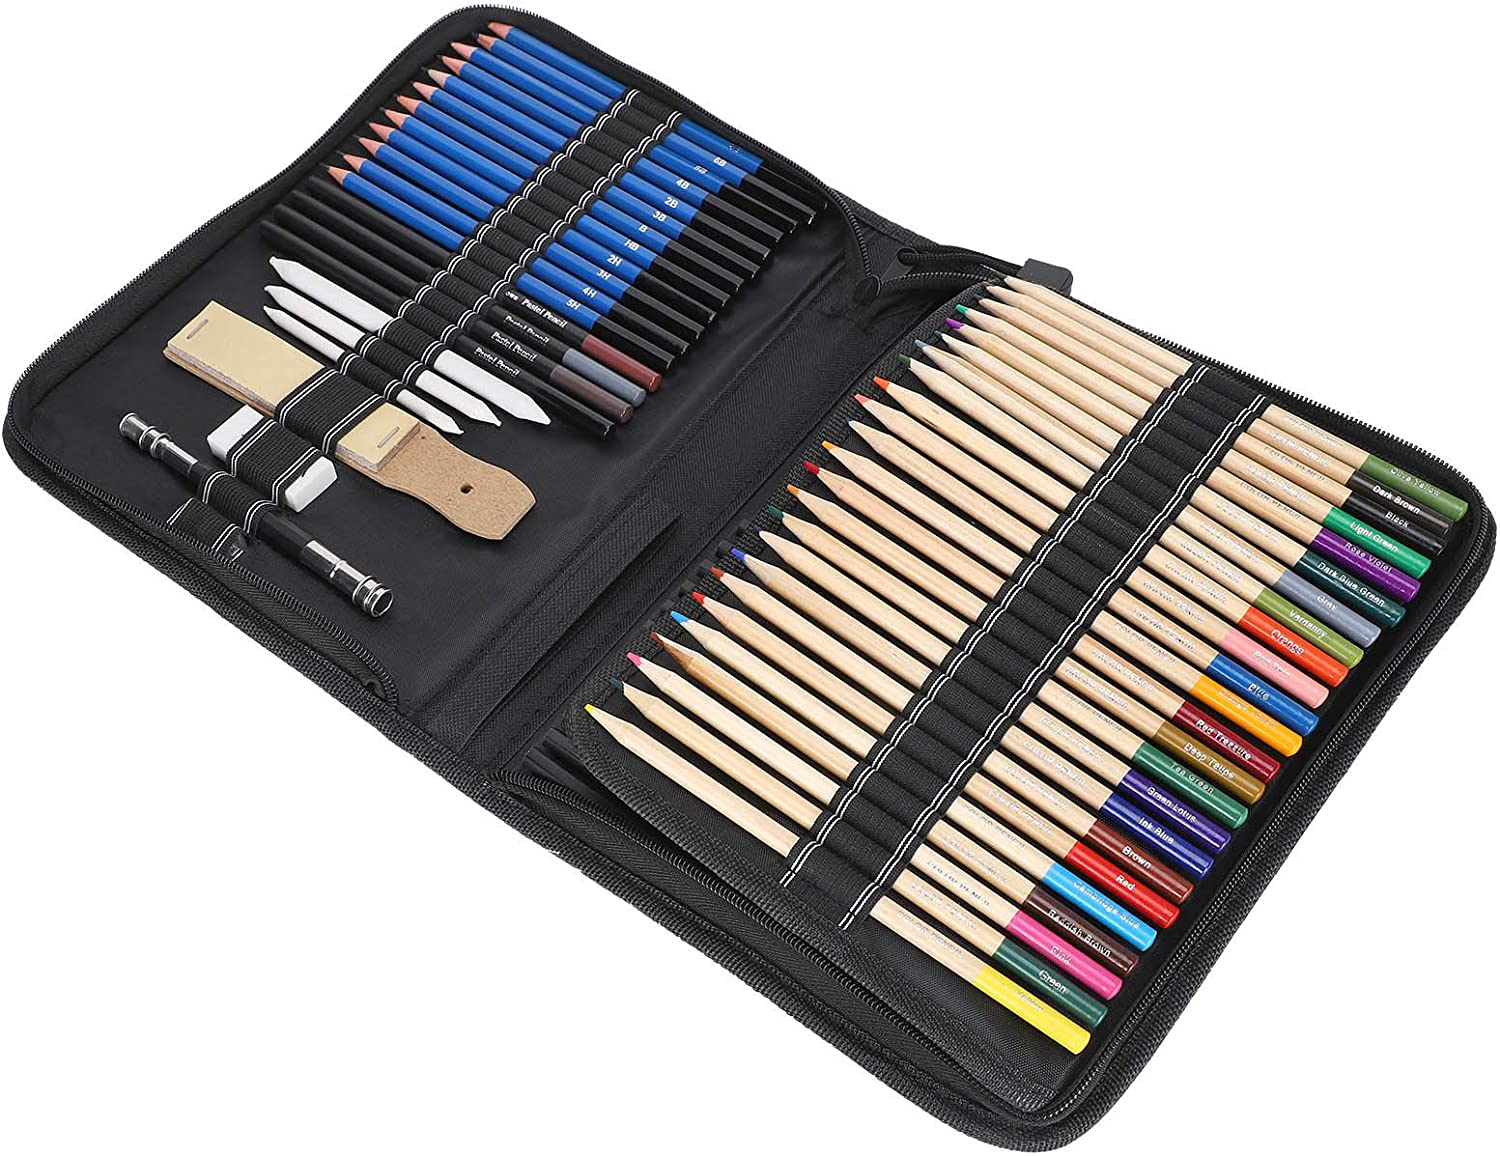 Challenge the lowest price of Japan Jinyi Popular popular Drawing Color Pencil f Durable Eco-Friendly